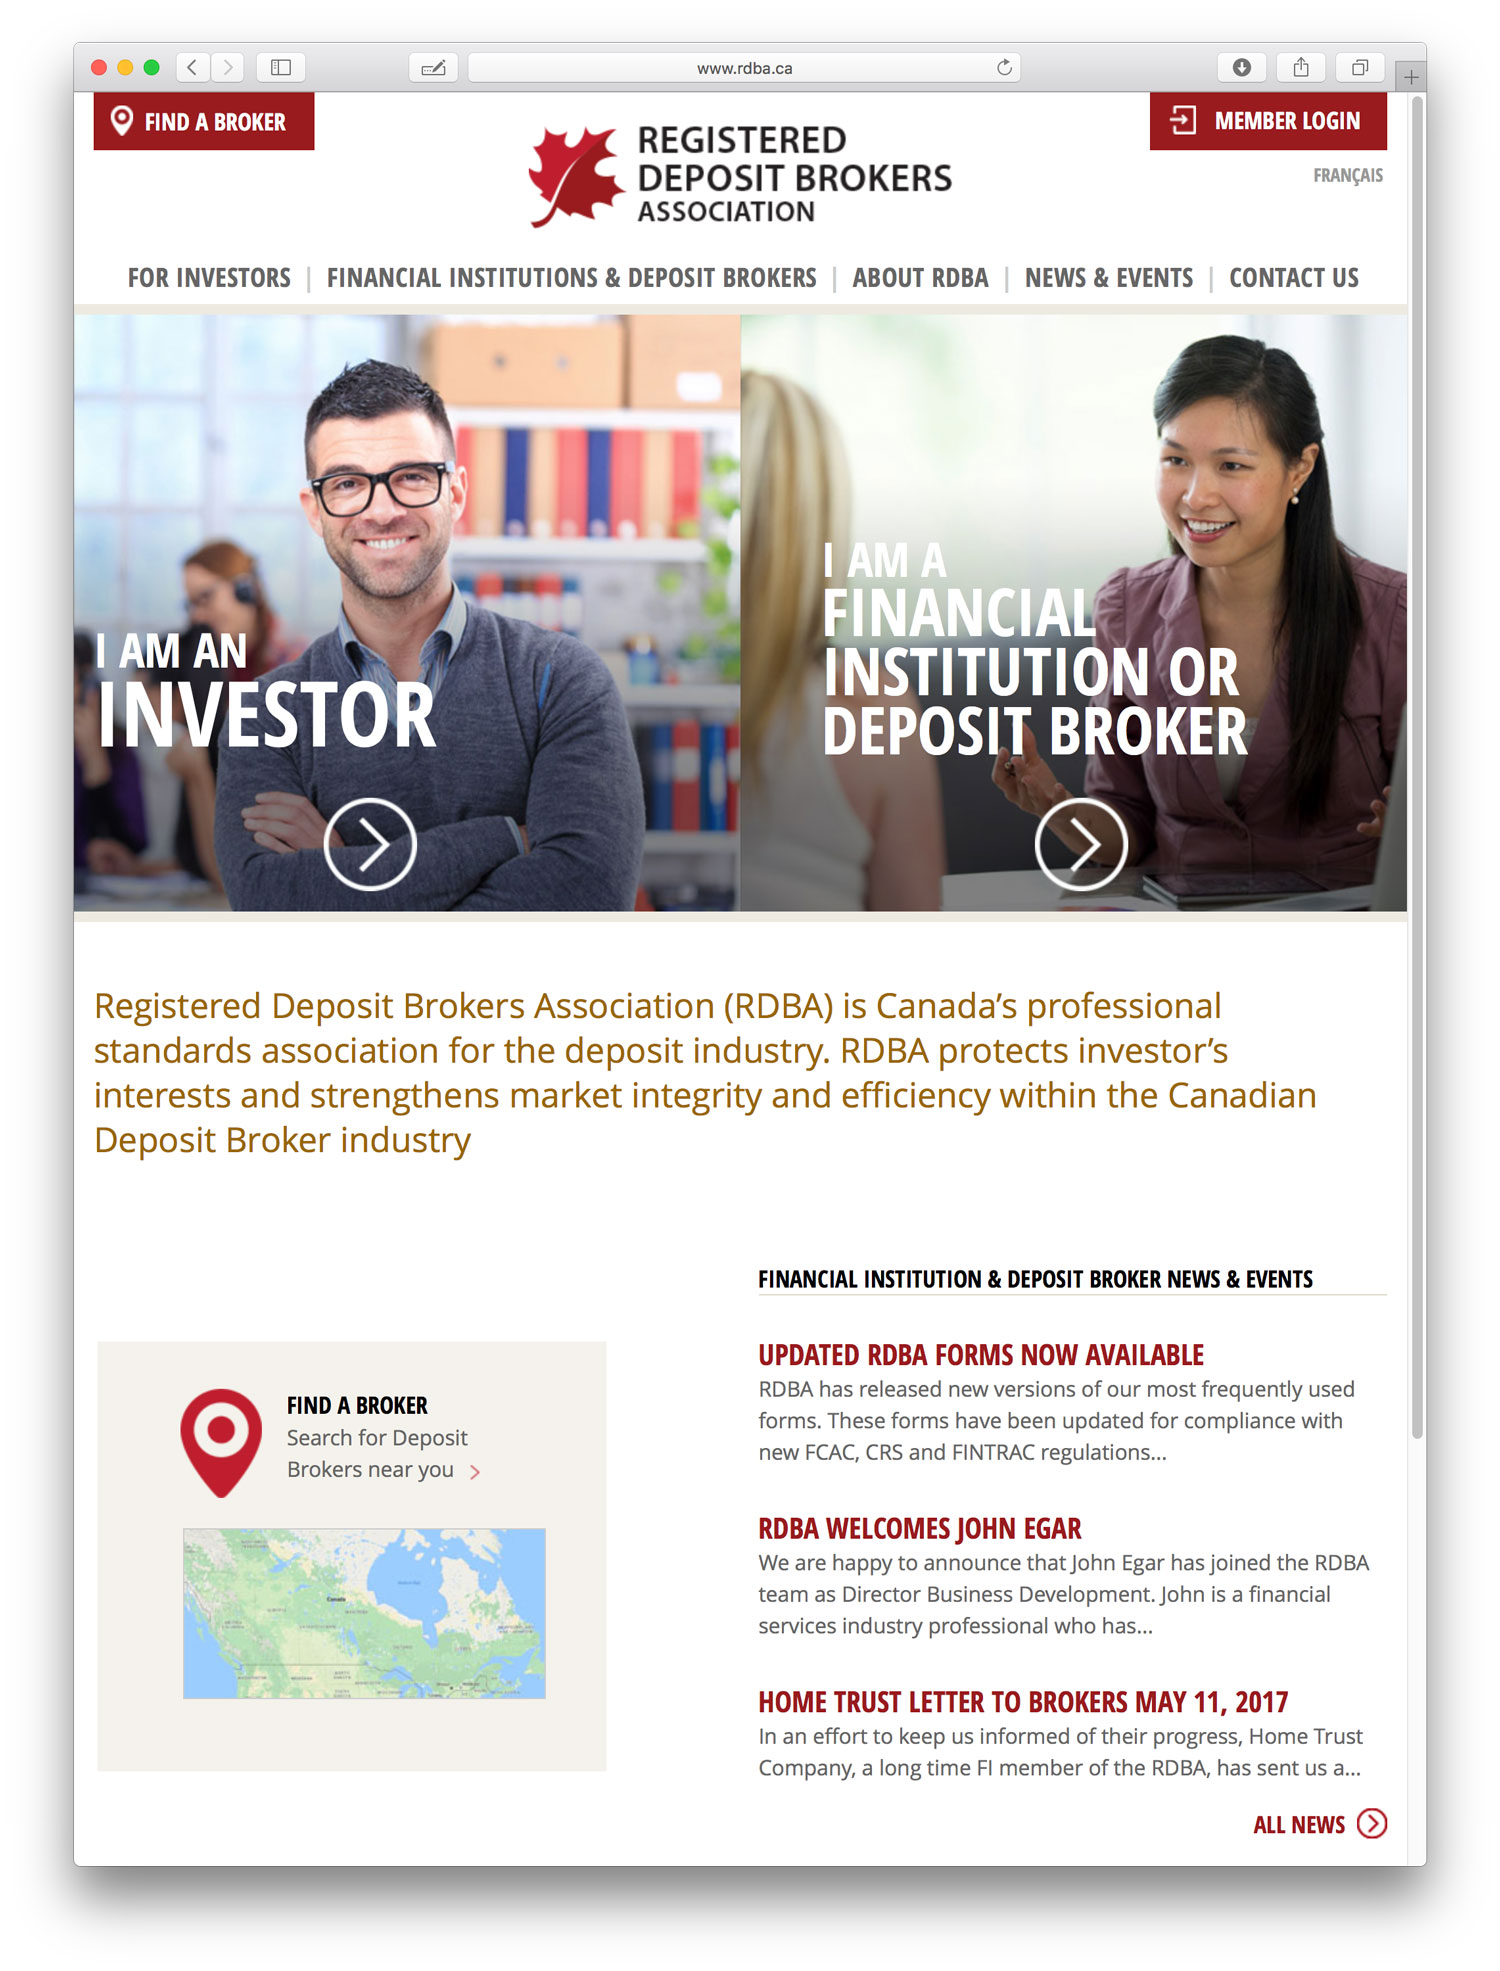 Association website design for RDBA showing home page